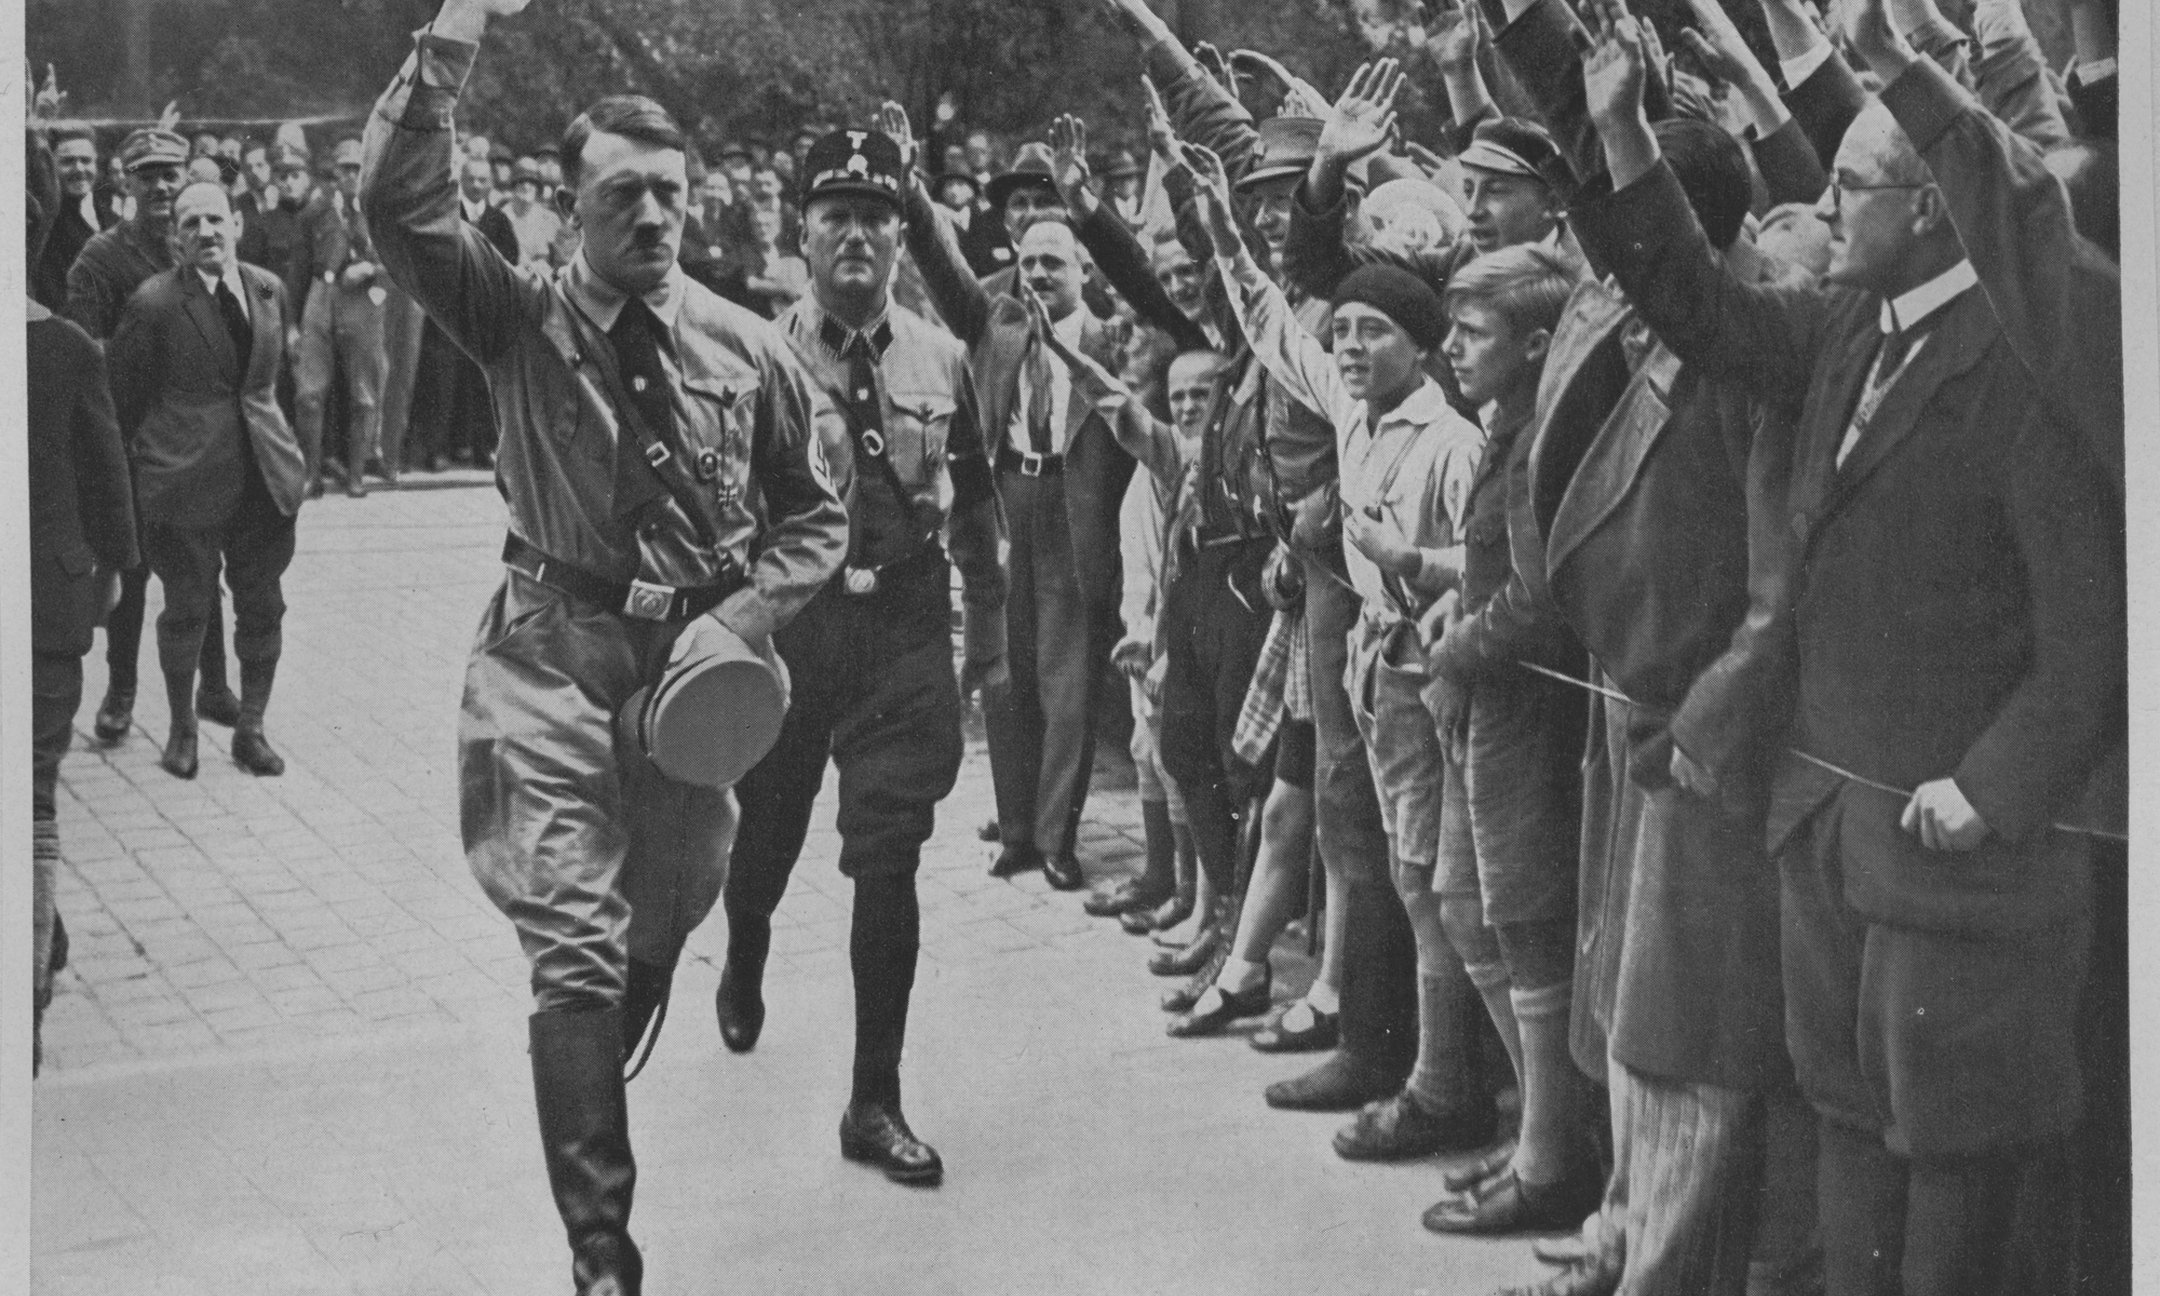 Adolf Hitler's followers greet him at a party conference in Neurenberg (1929). This and other pictures came with packets of cigarettes and were collected in special albums. This picture is from the series Deutschland erwacht [Germany awakes].